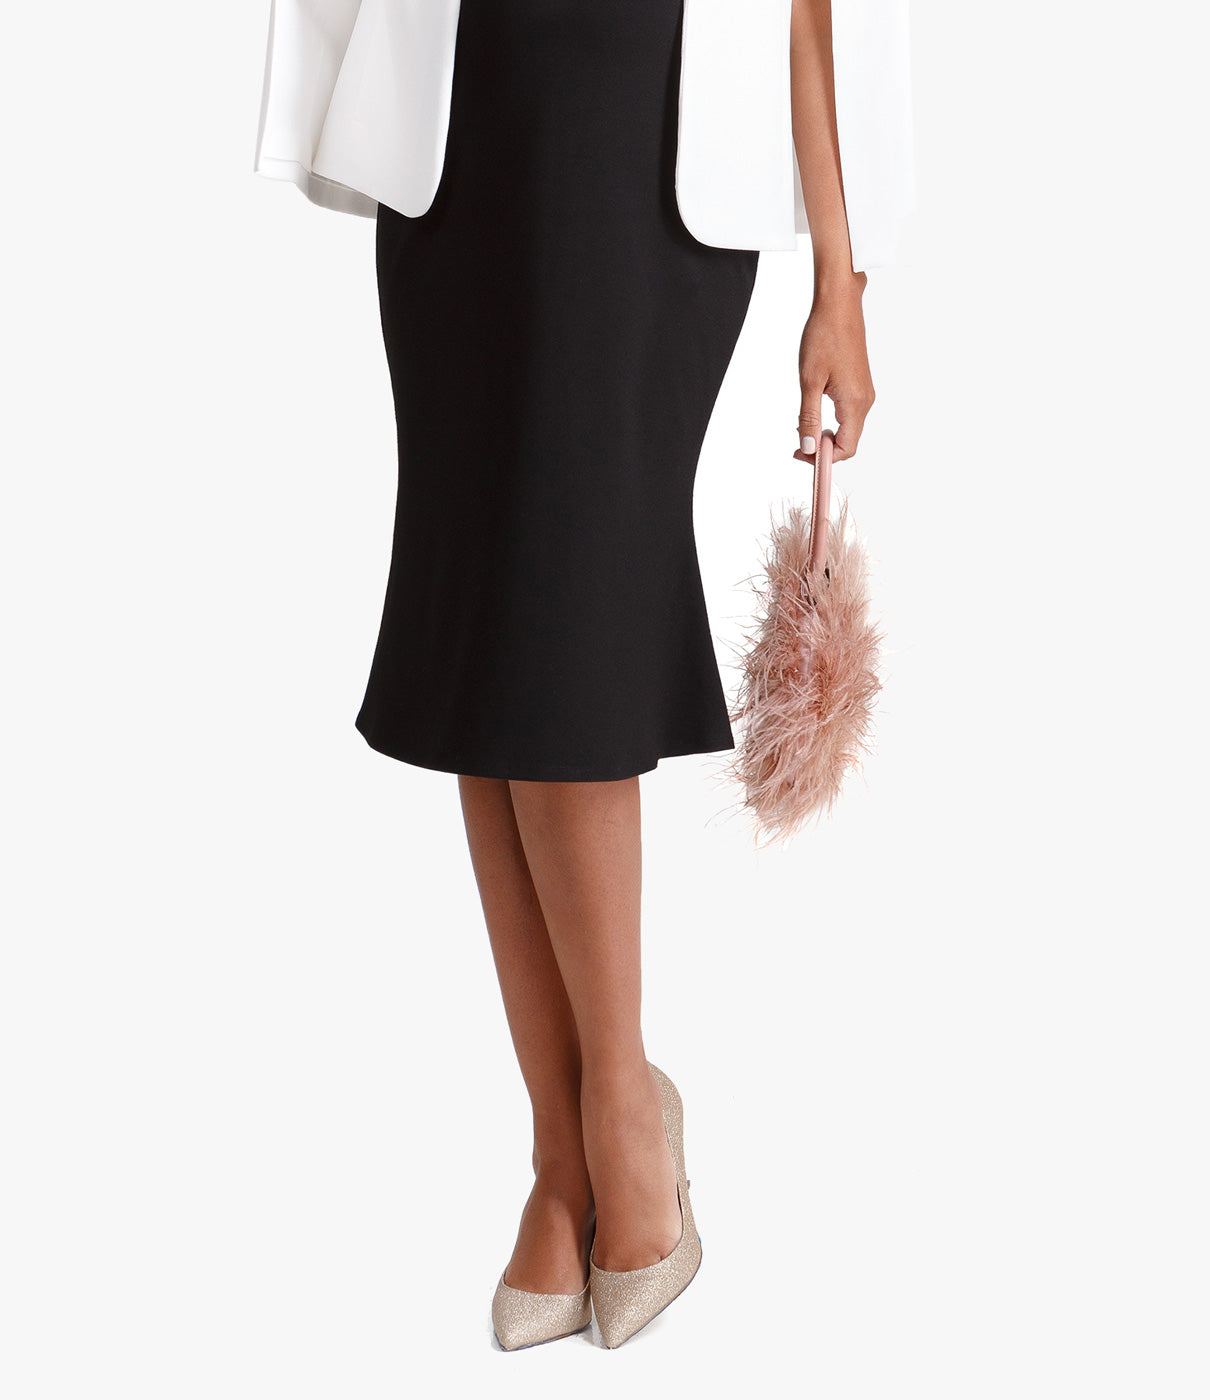 Where to WearPerfect for parties, weddings, or showers.  A great wear to work staple, too! Just throw on a blazer and pair of heels for a crazy comfortable work look.